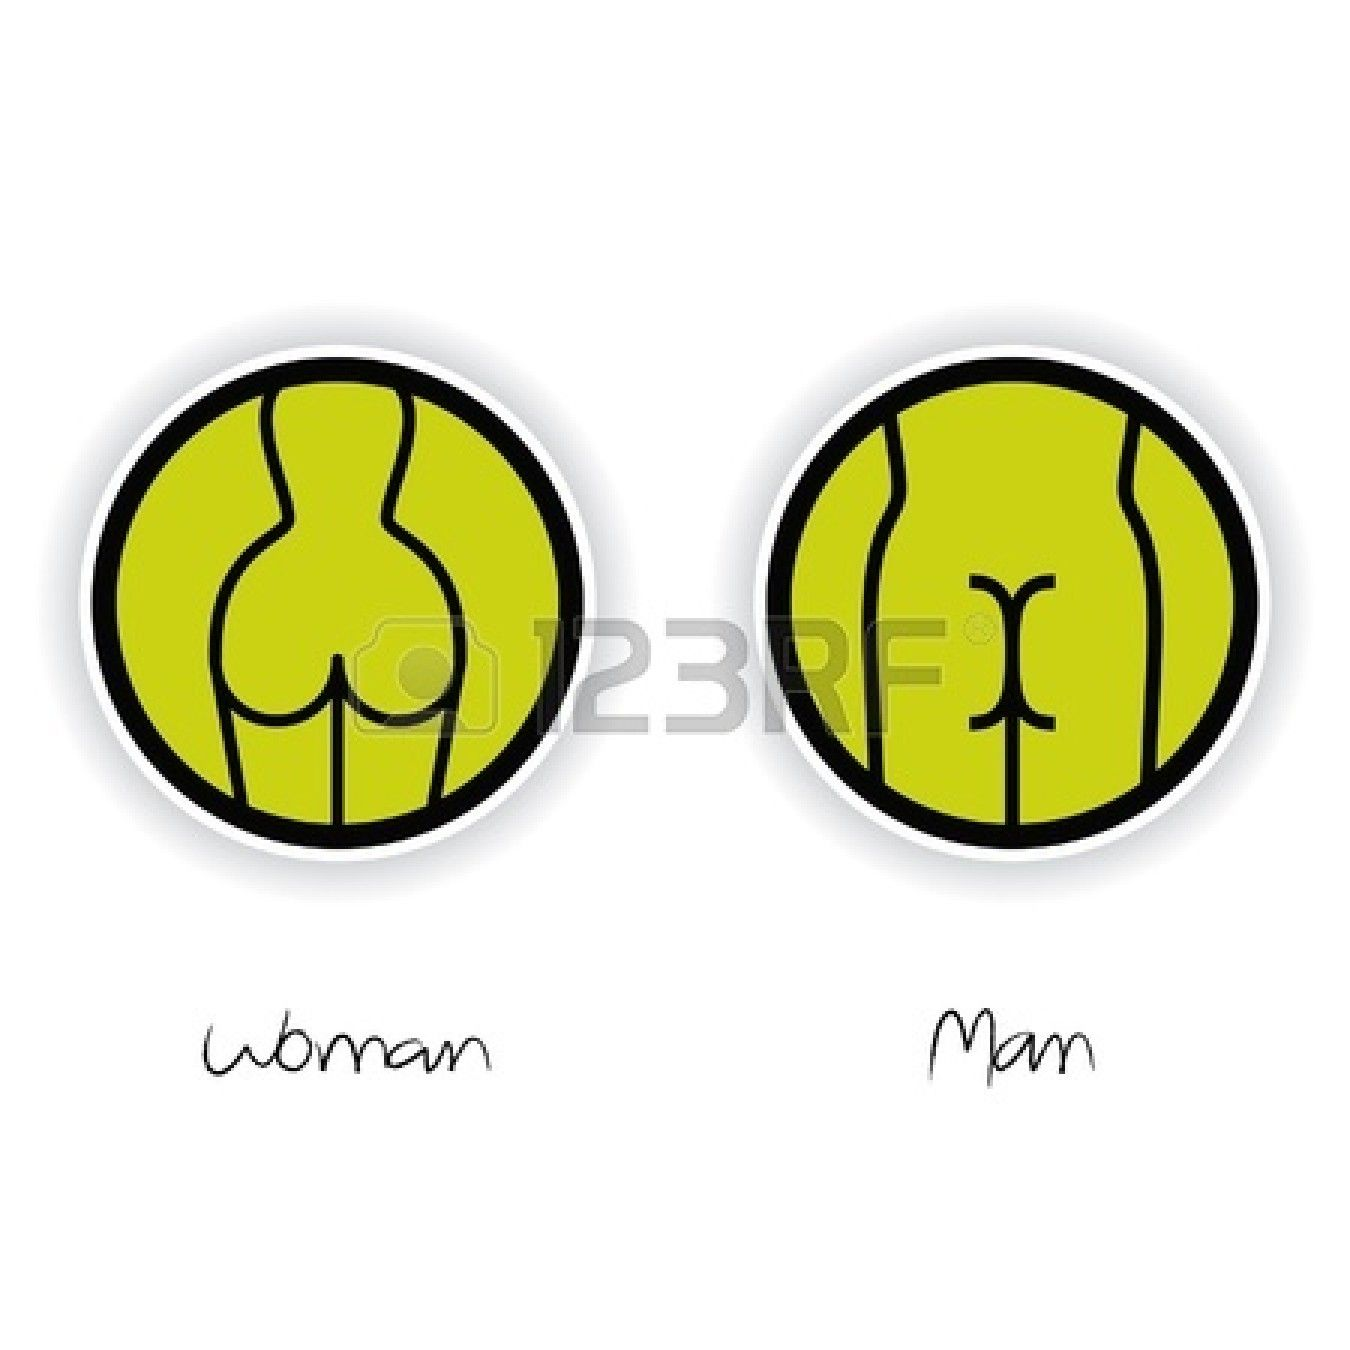 Women and men toilet sign stock vector restroom sign pinterest women and men toilet sign stock vector biocorpaavc Choice Image